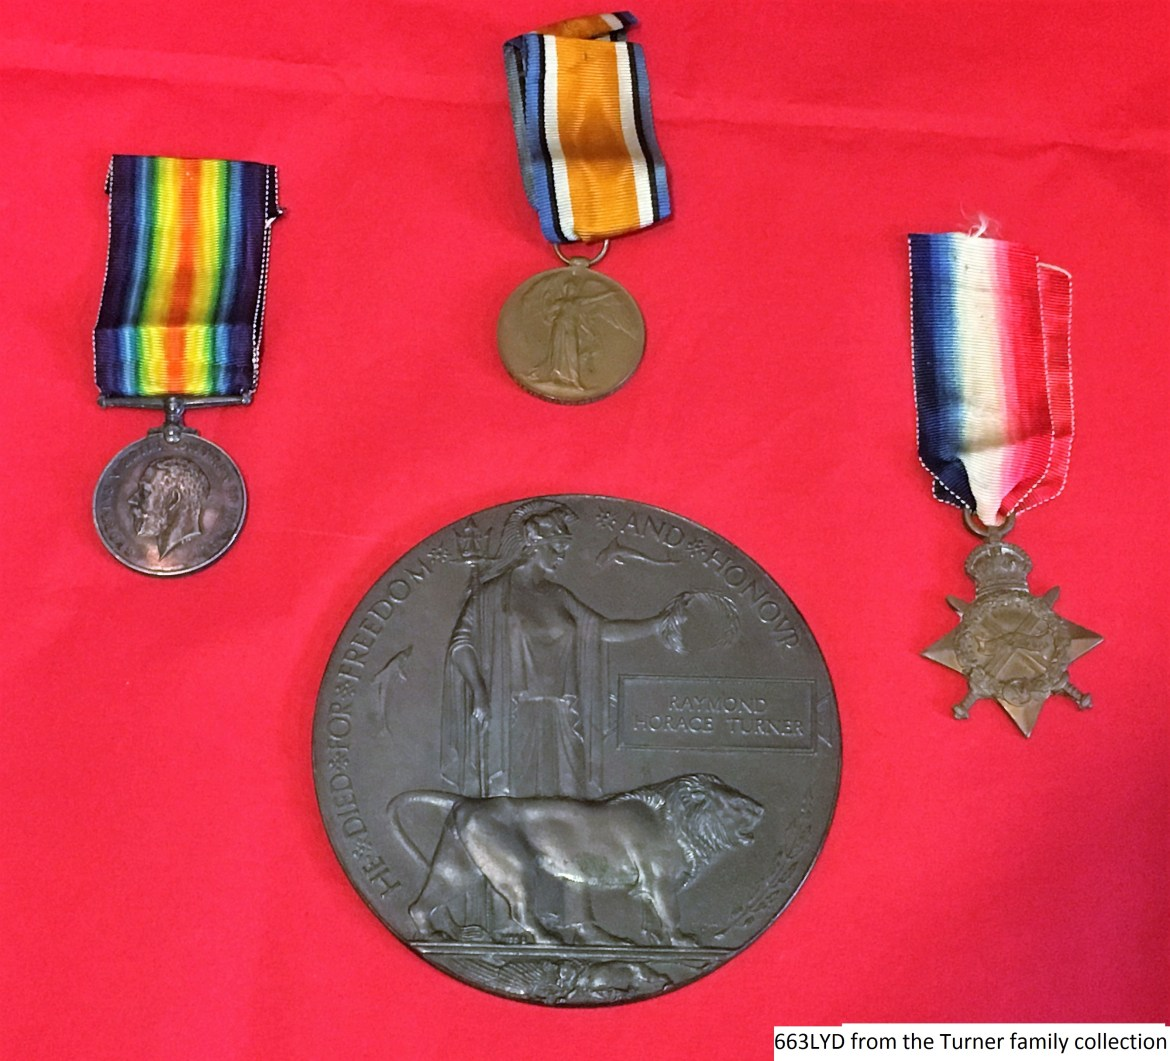 Raymond Turner Death Penny and Medals